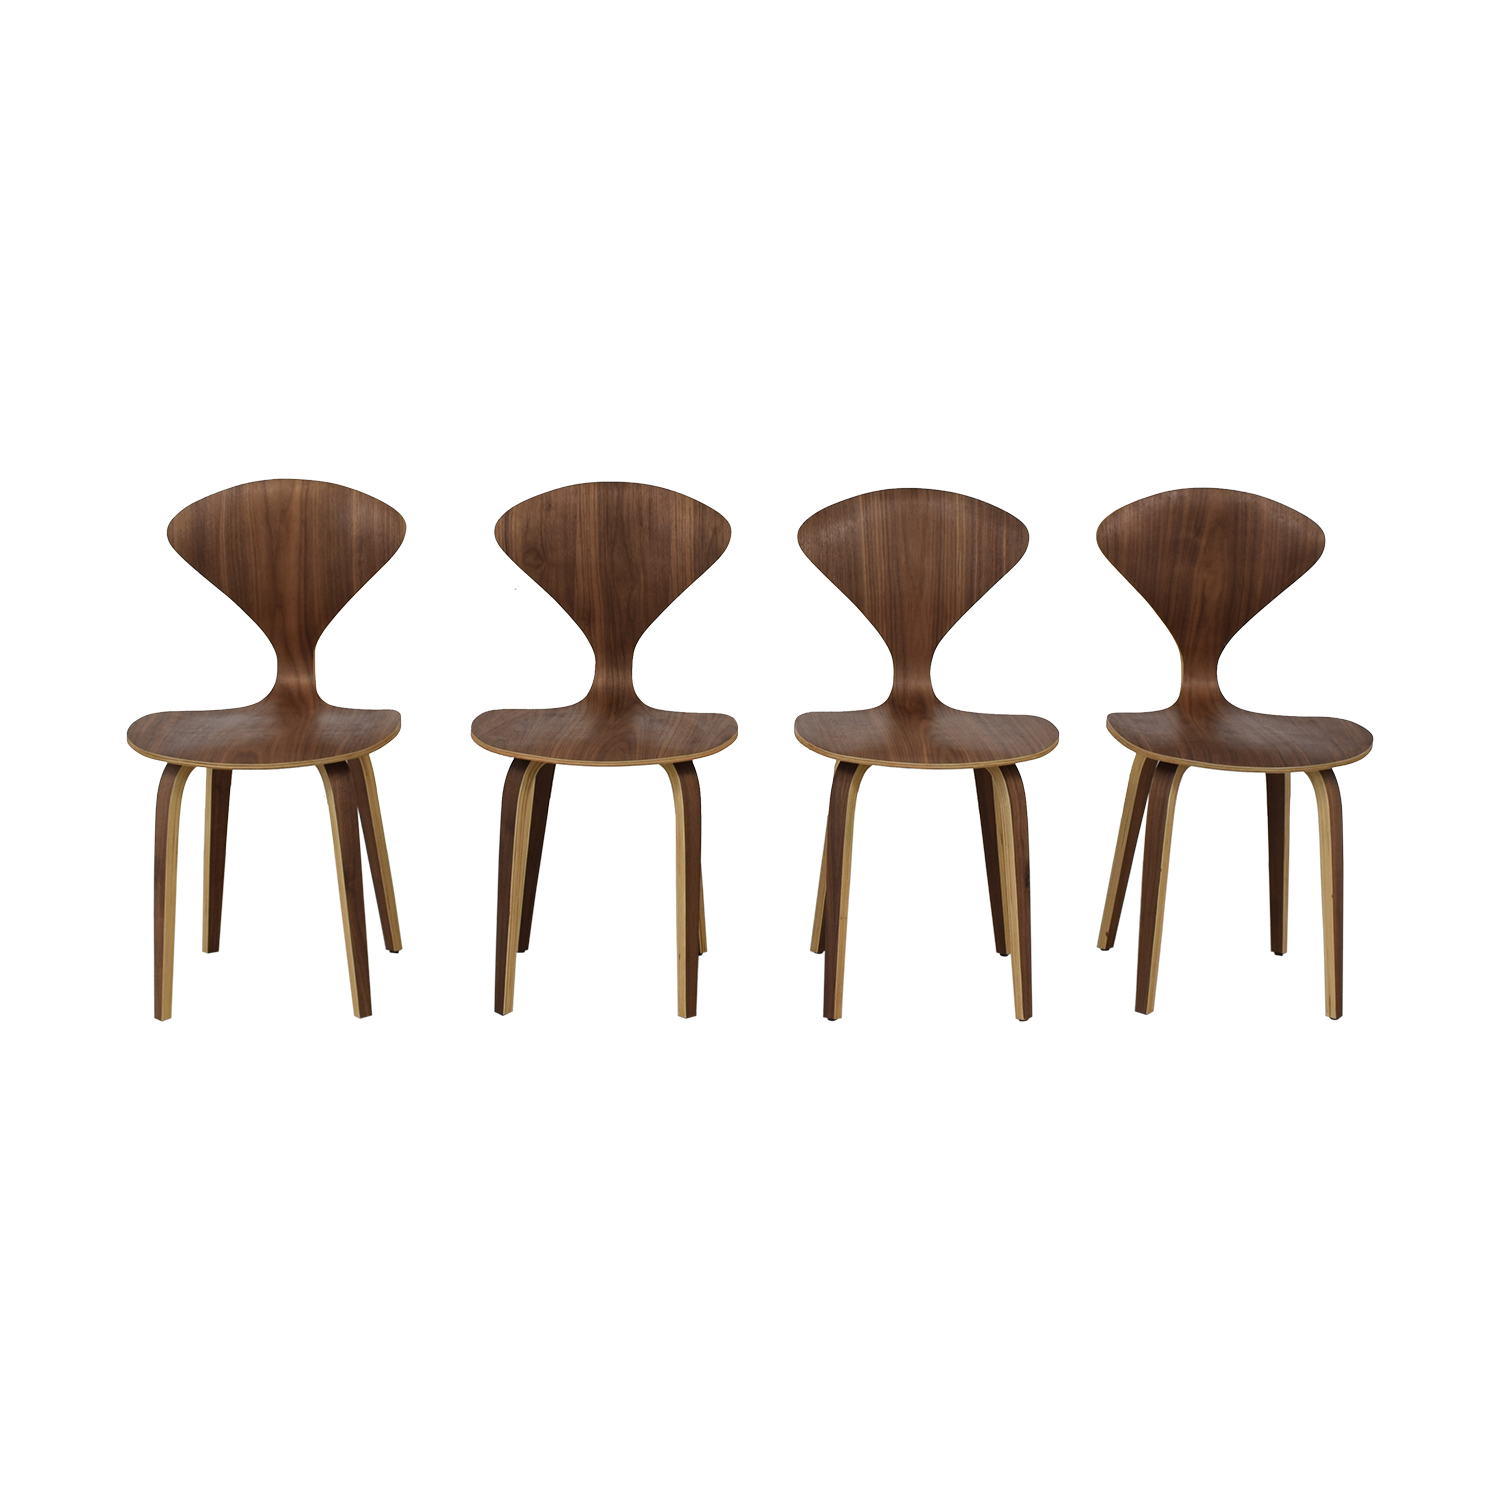 Rove Concepts Mid-Century Modern Dining Chairs / Chairs